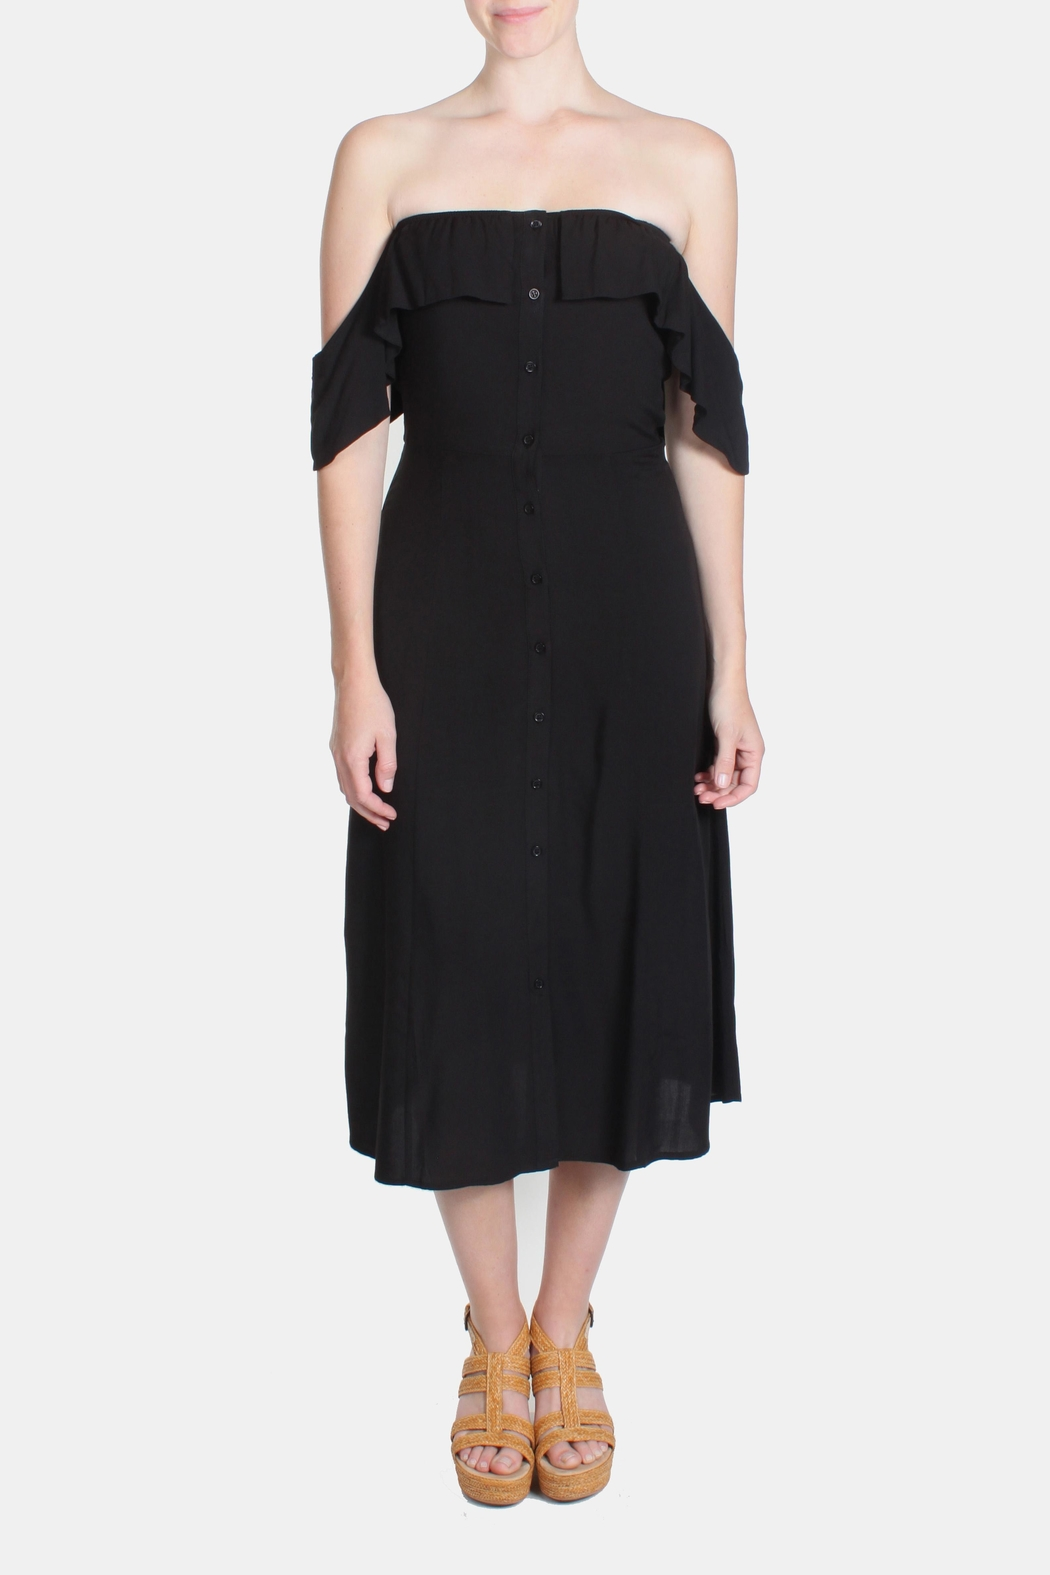 rokoko Black Off-Shoulder Dress - Side Cropped Image